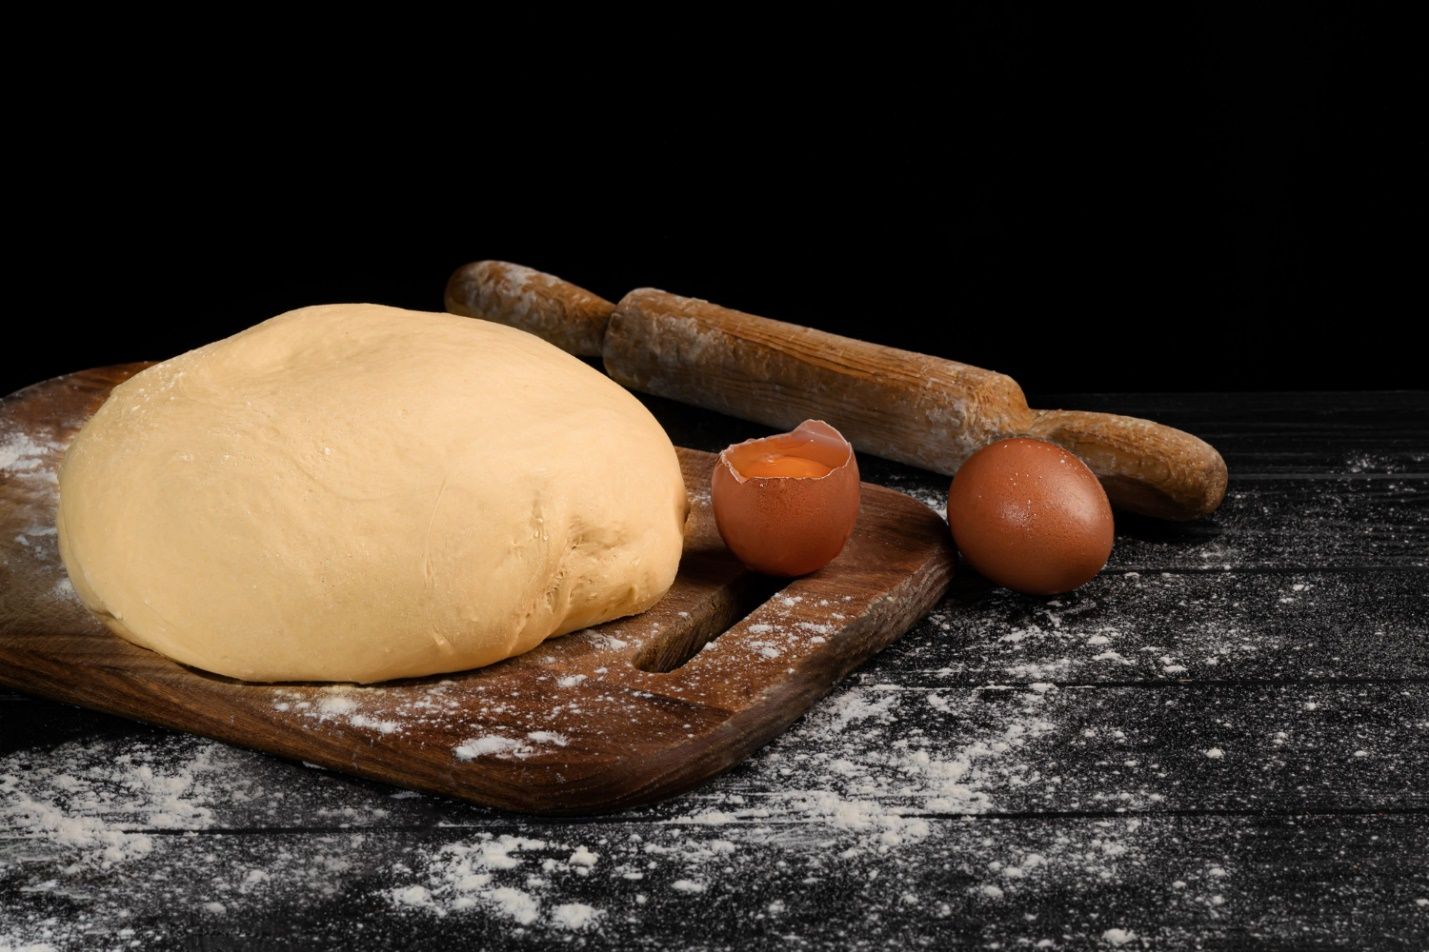 C:\Users\Dell\Downloads\dough-preparation-yeast-dough-pies-rolling-pin-with-flour-dark.jpg